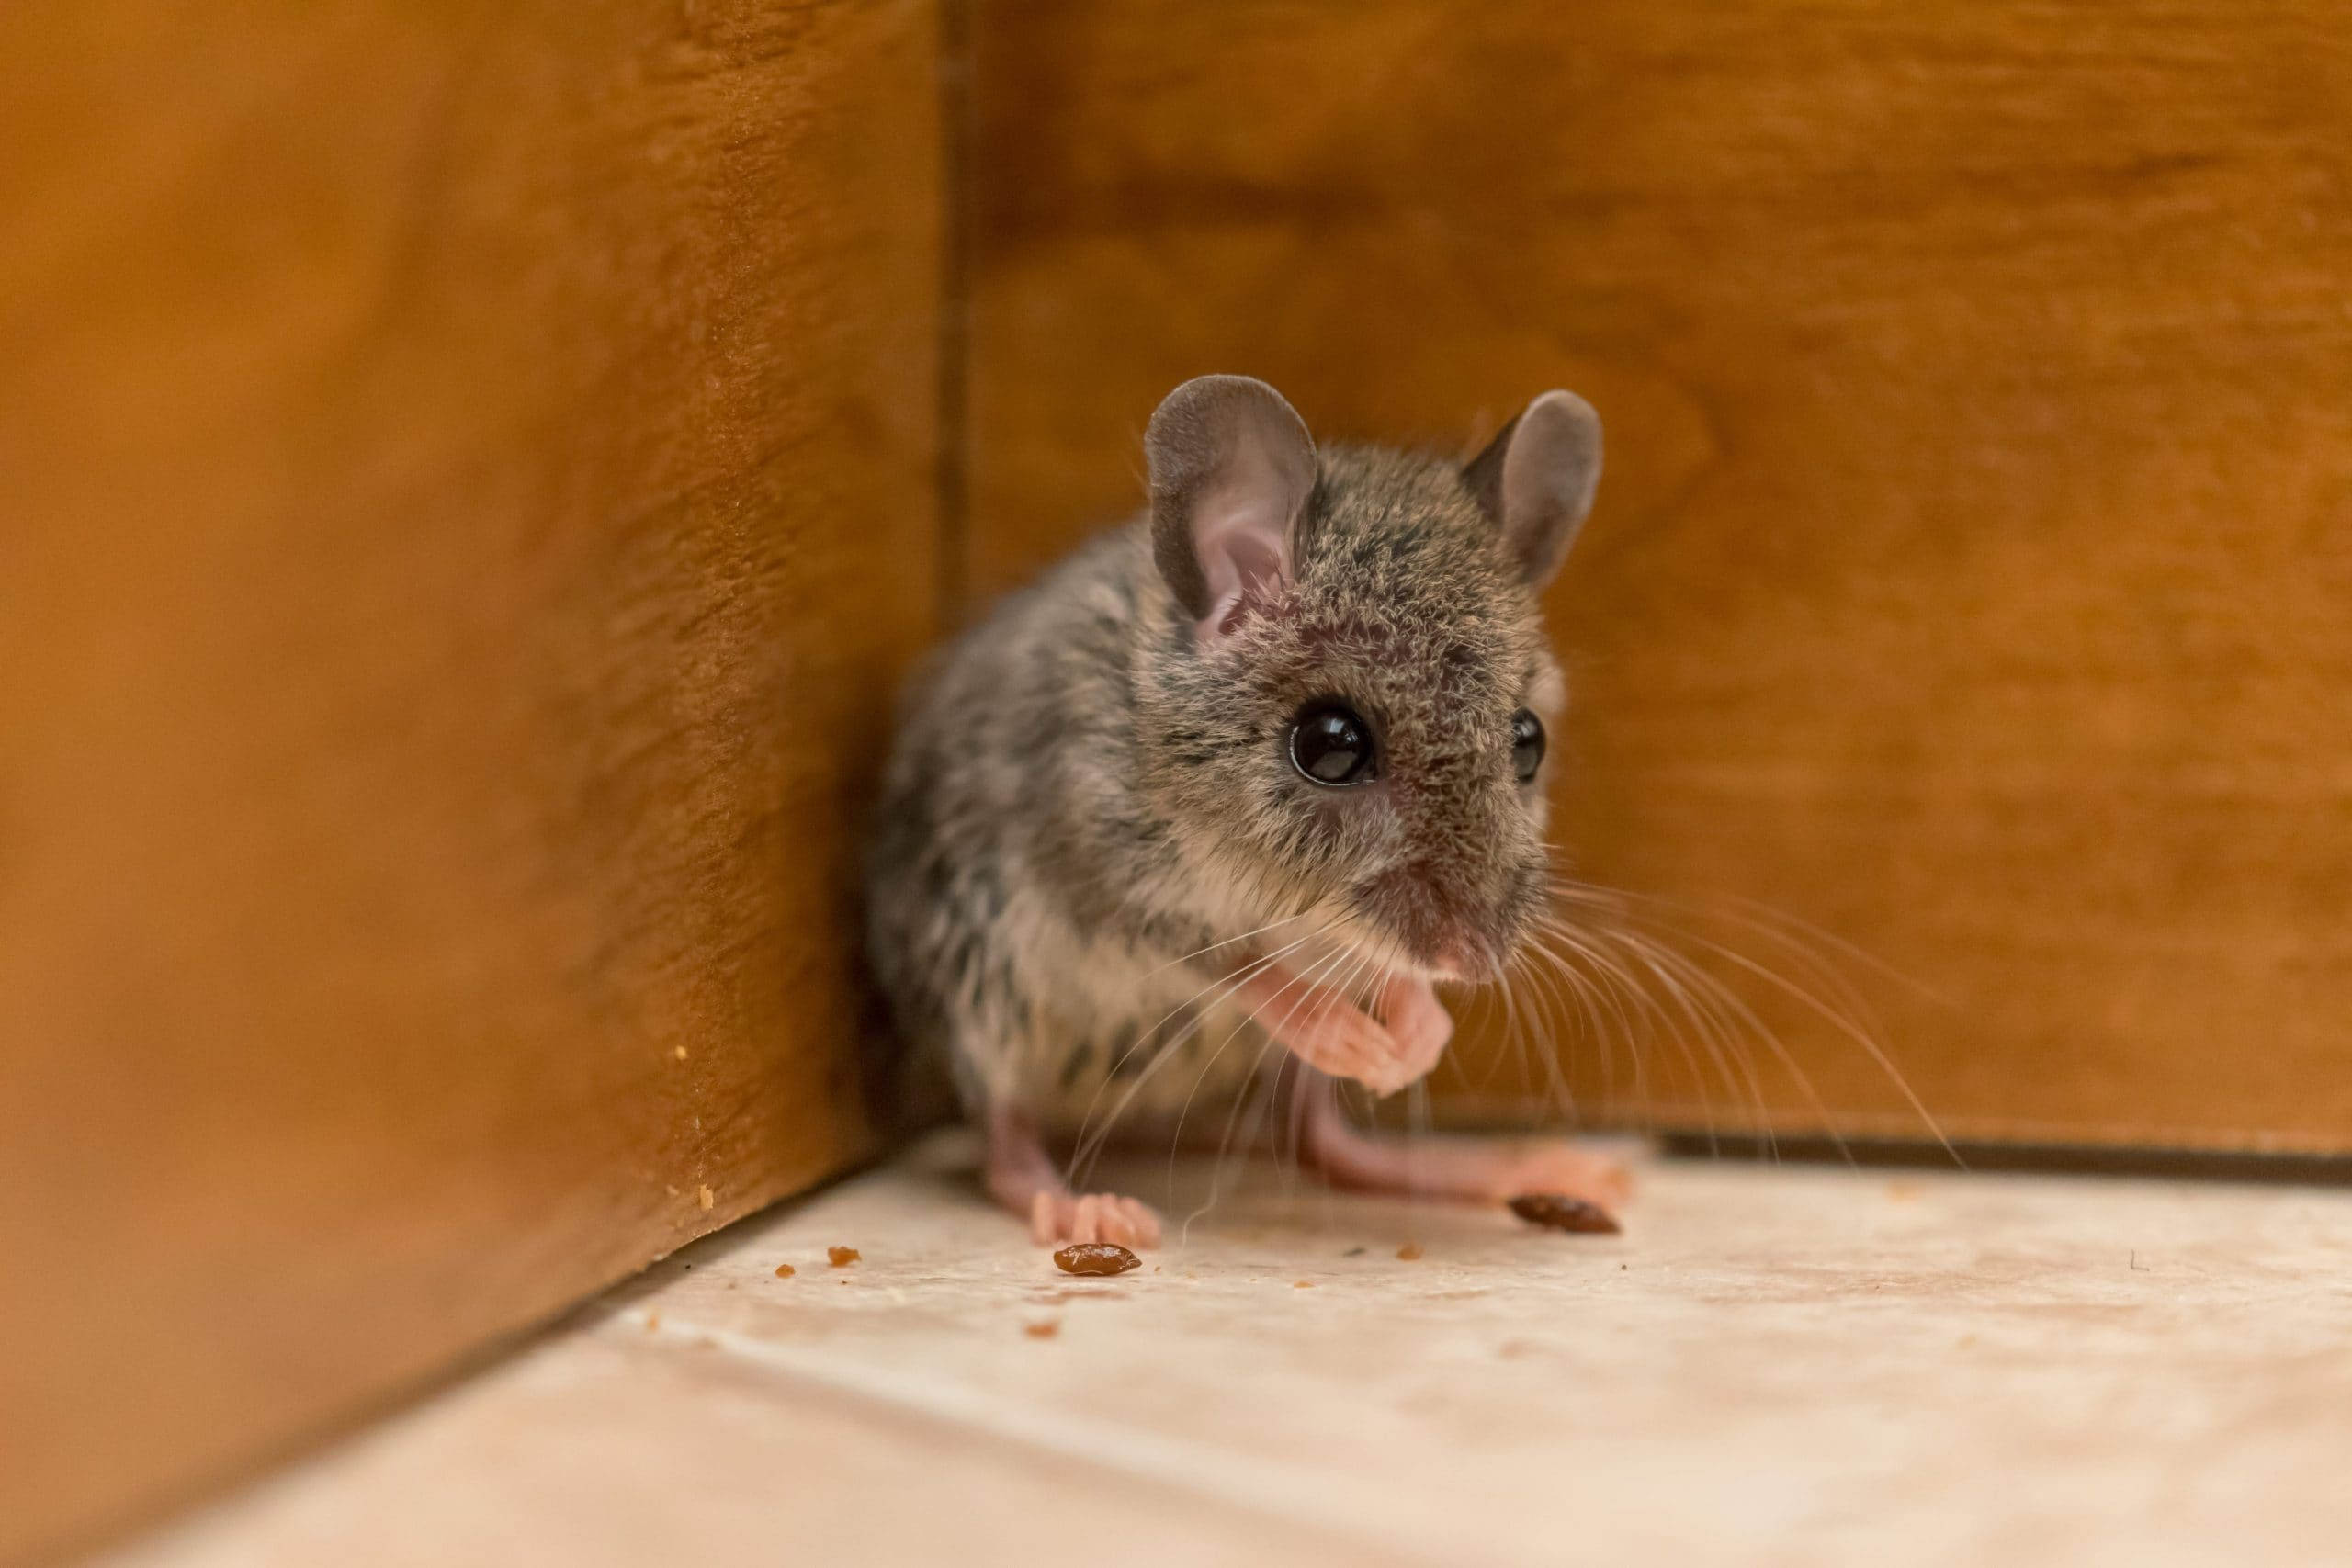 What Household Items Can I Use to Catch a Mouse